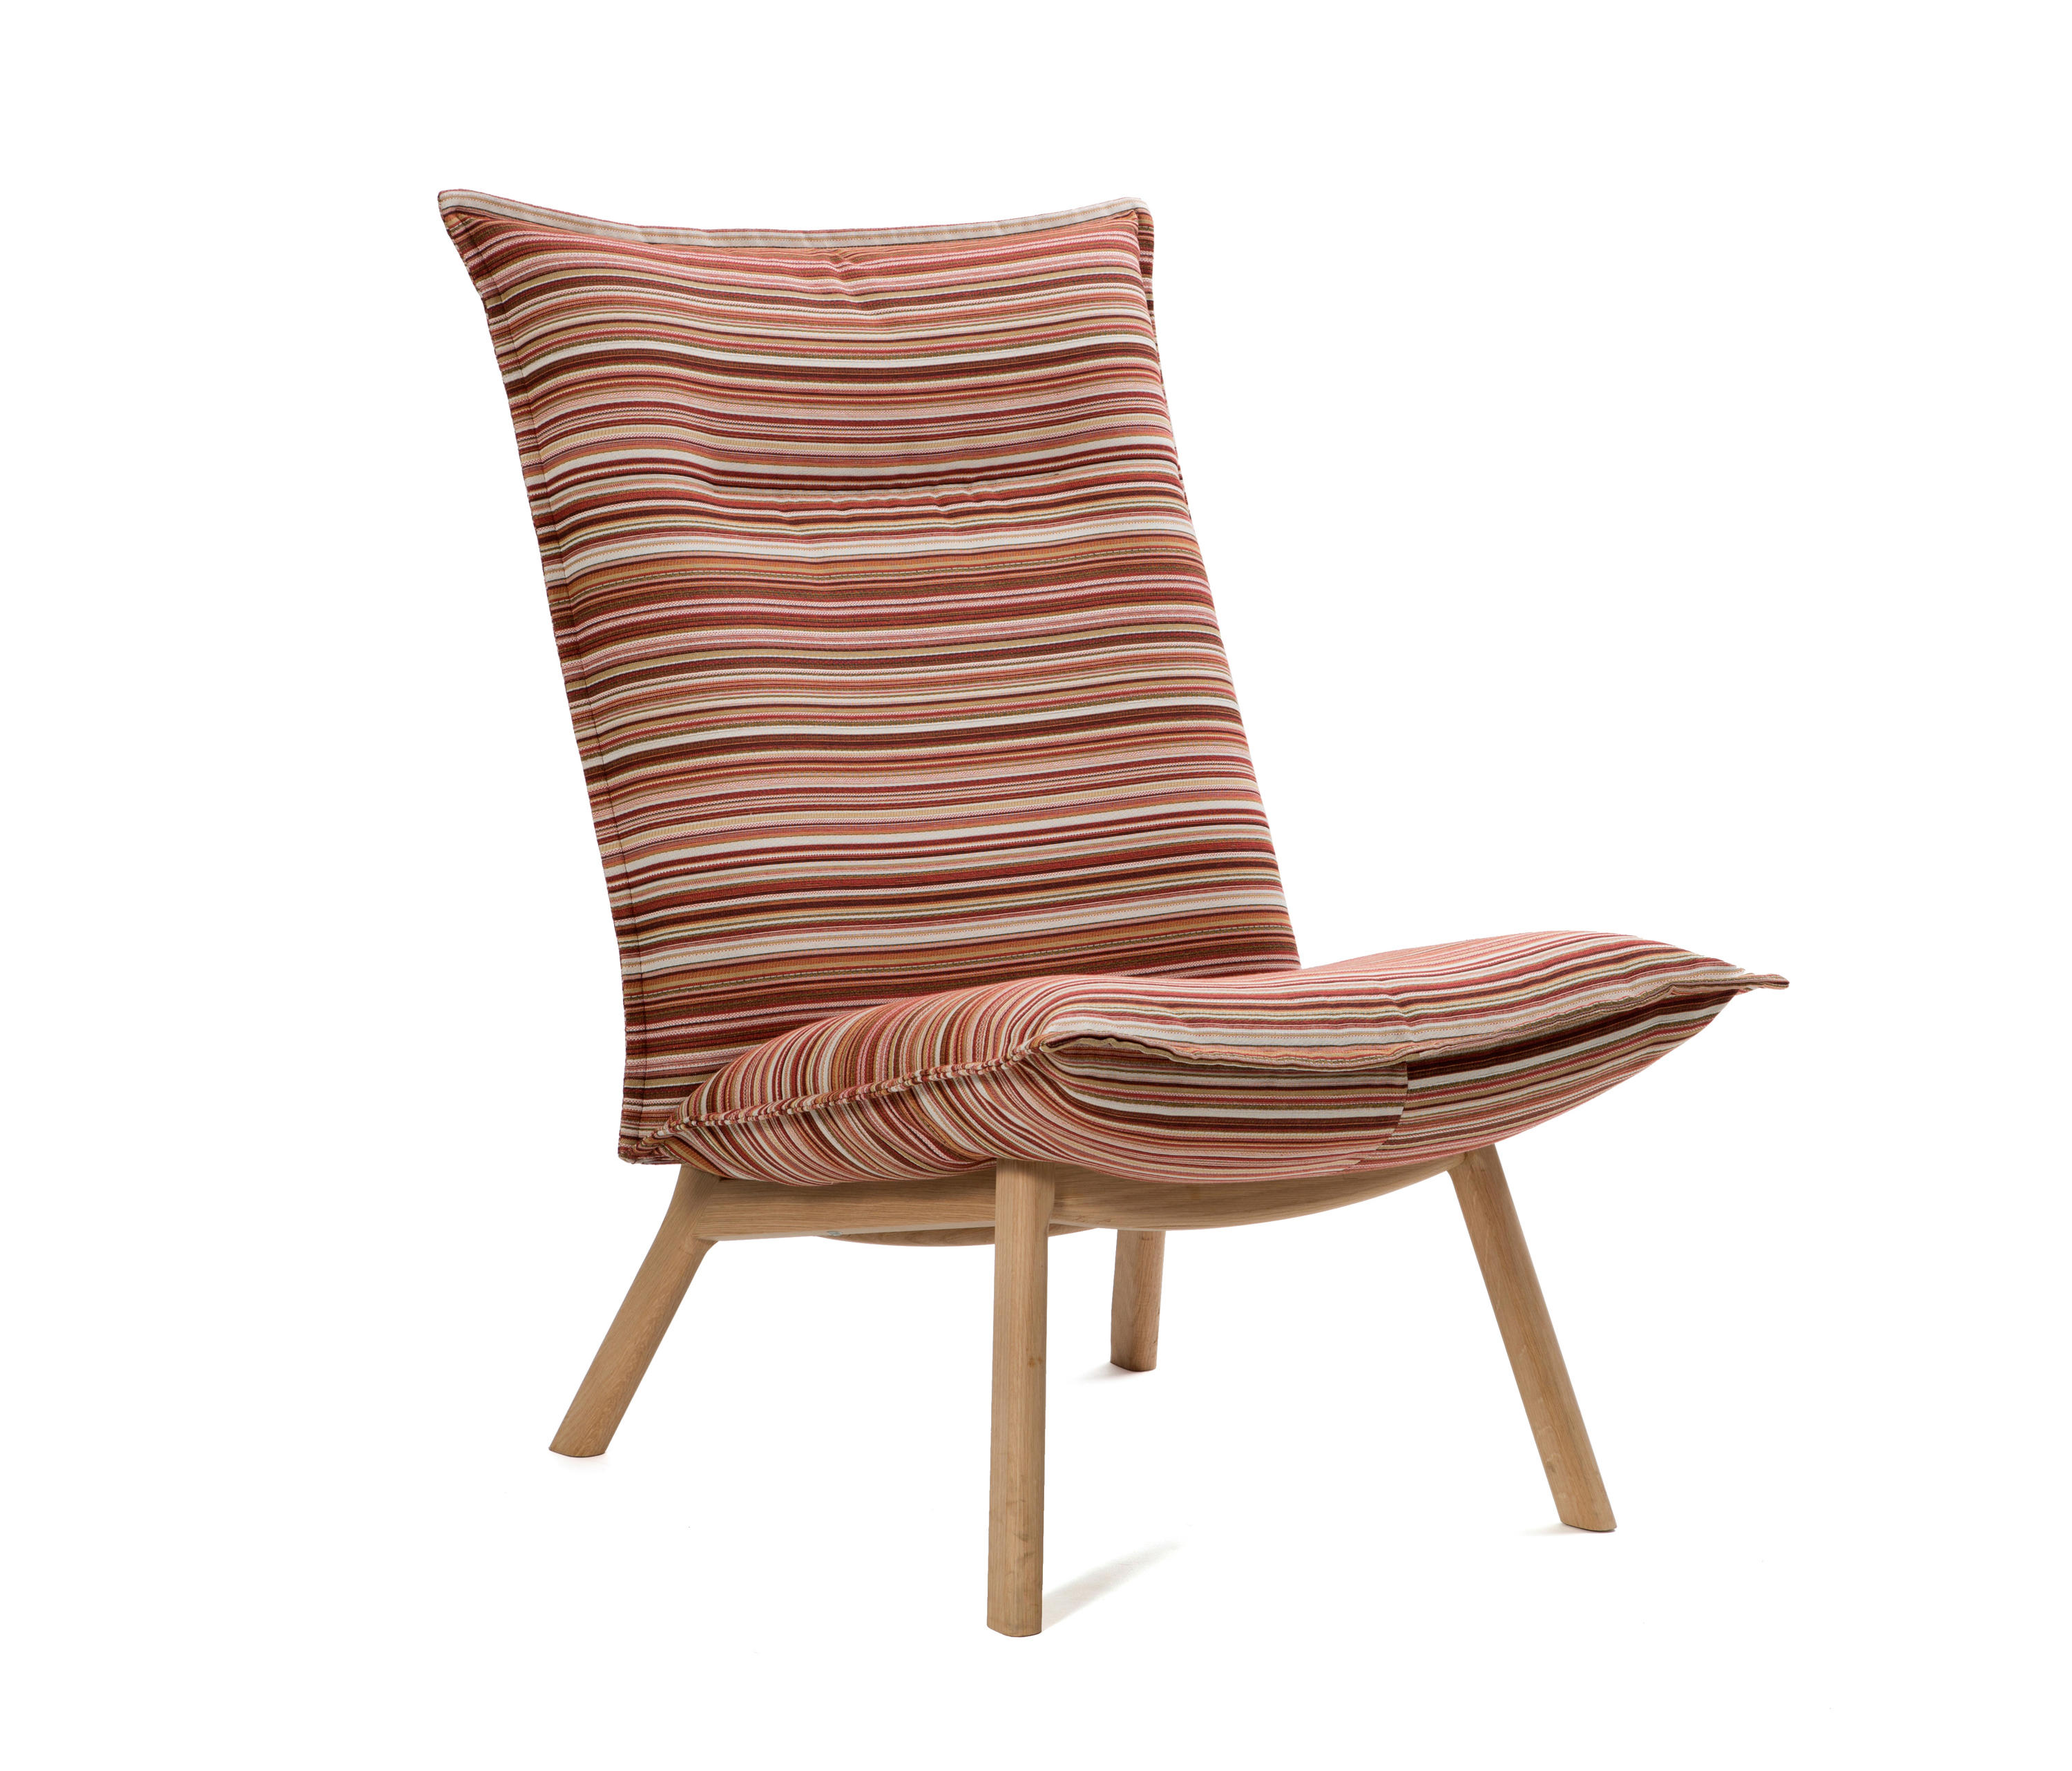 Lab Chair XL By Inno | Lounge Chairs ...